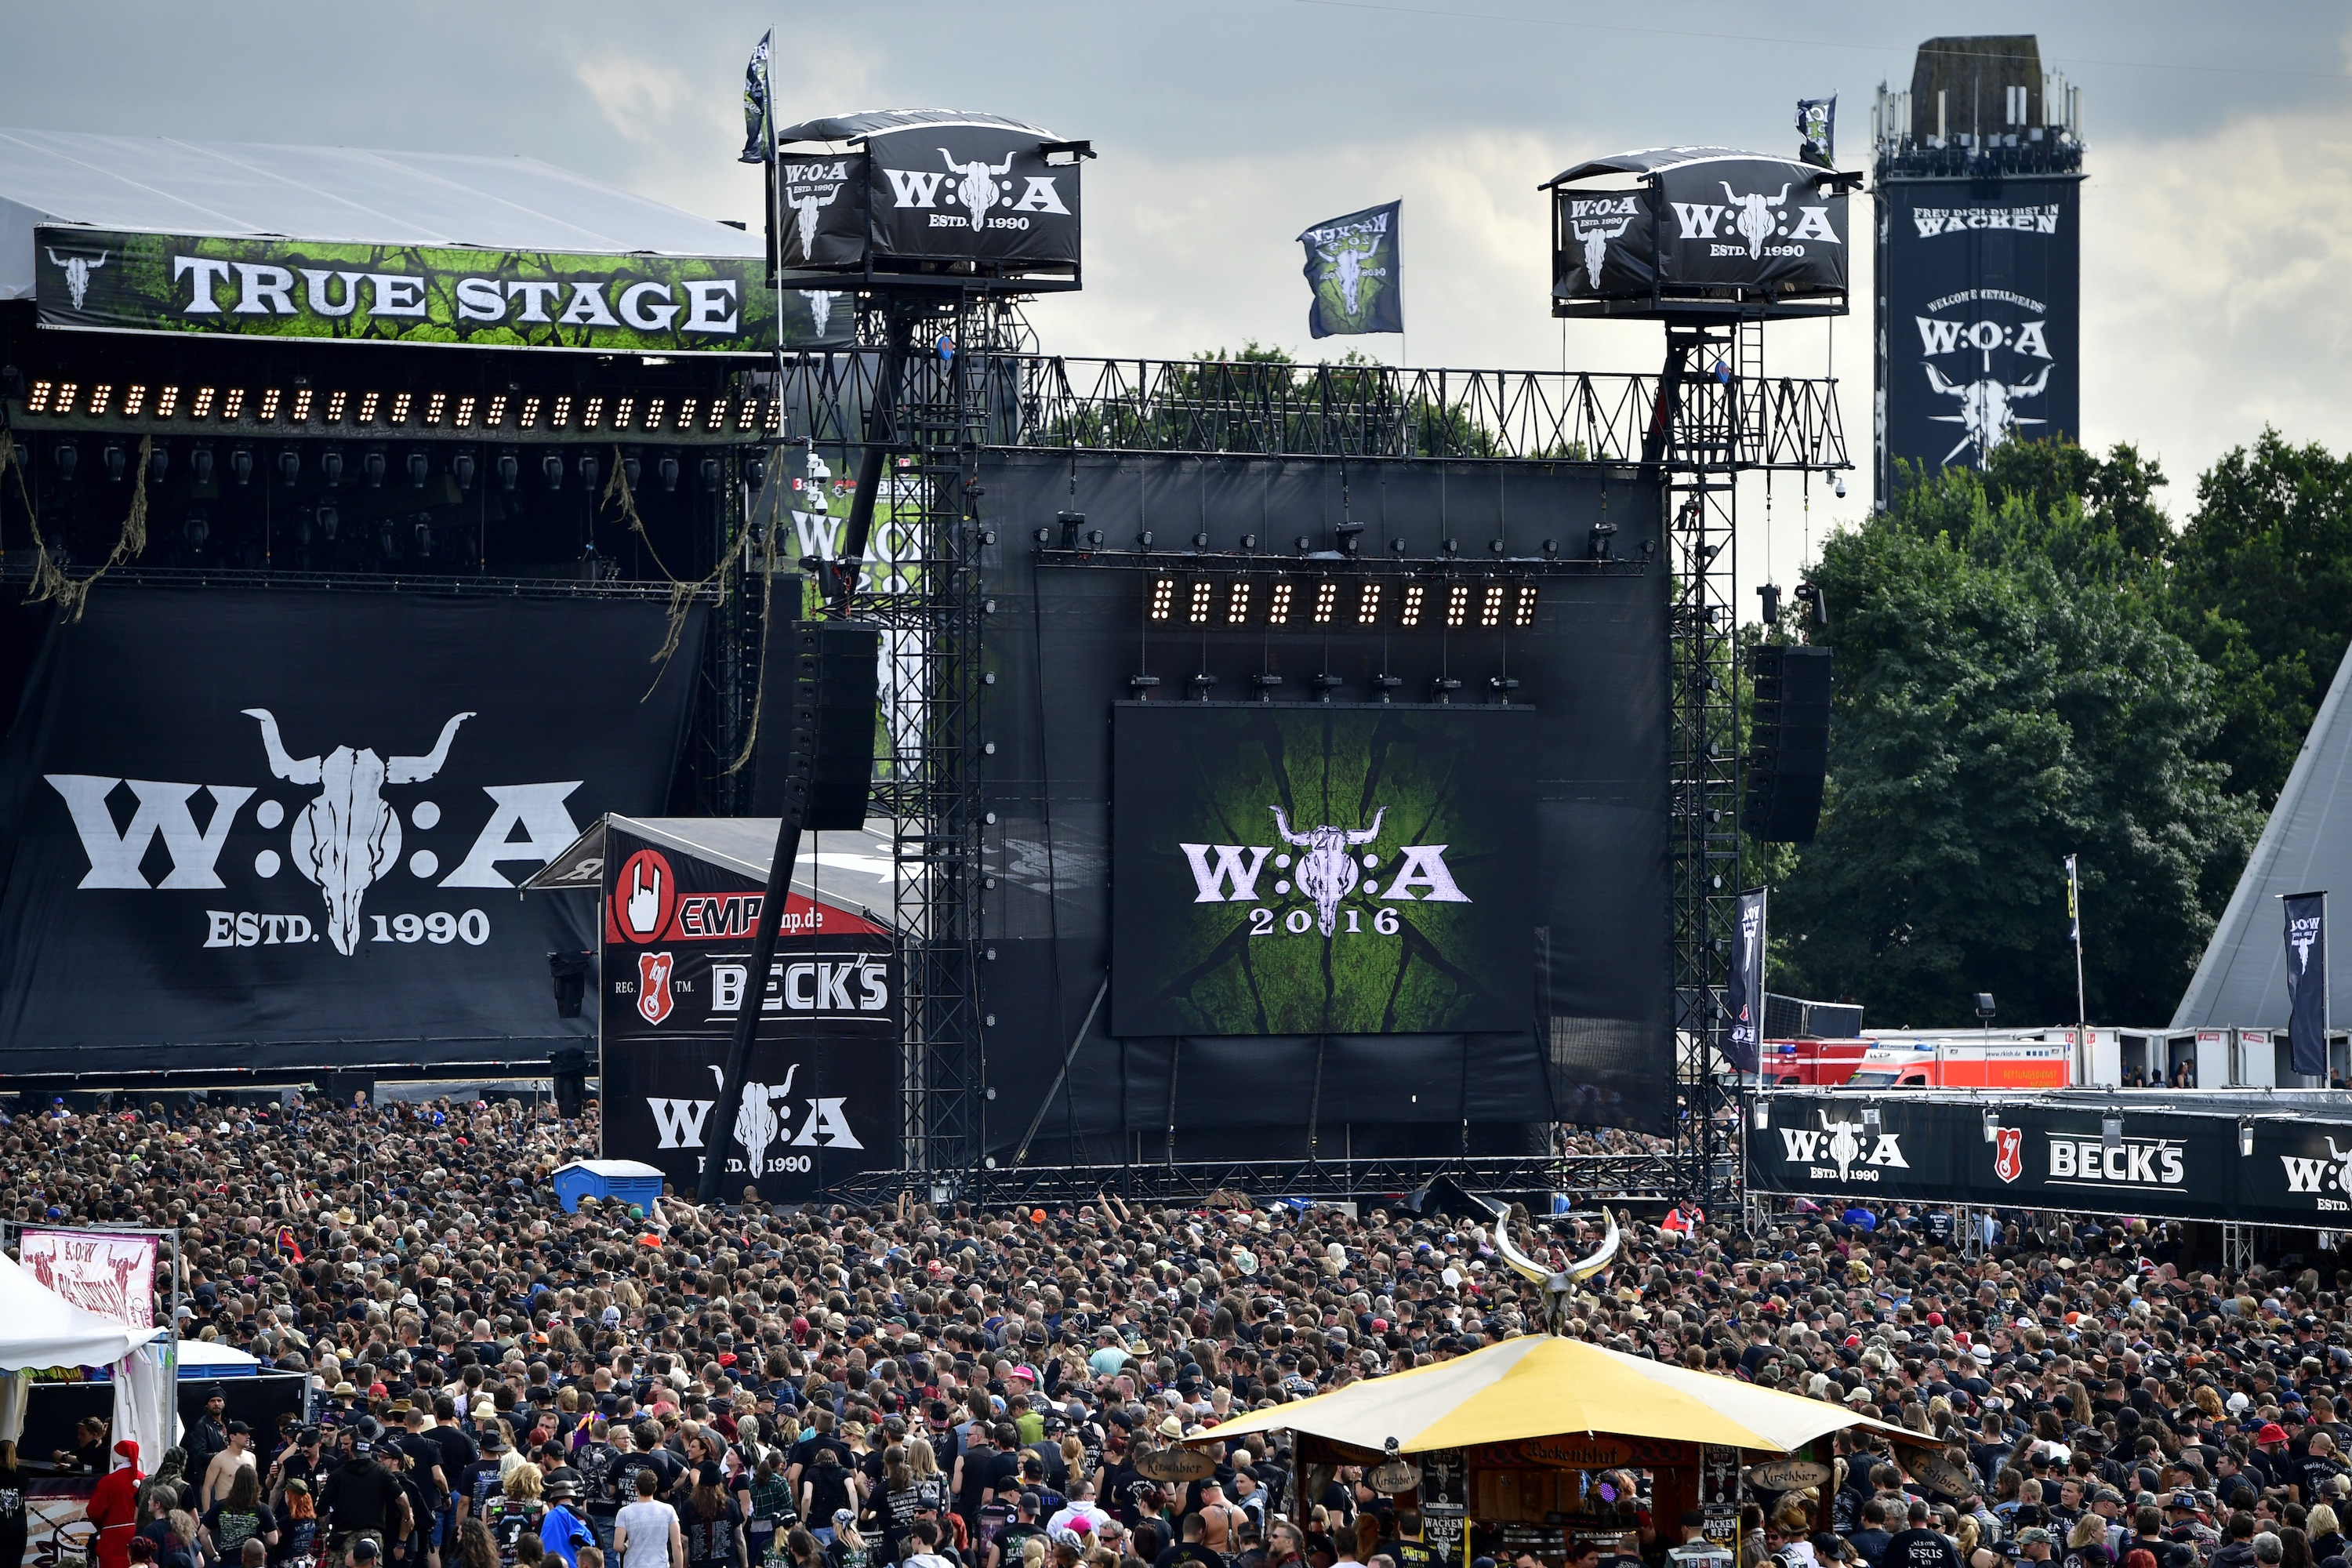 WACKEN, GERMANY - AUGUST 04: General view of the Wacken Open Air festival on August 4, 2016 in Wacken, Germany. Wacken is a v